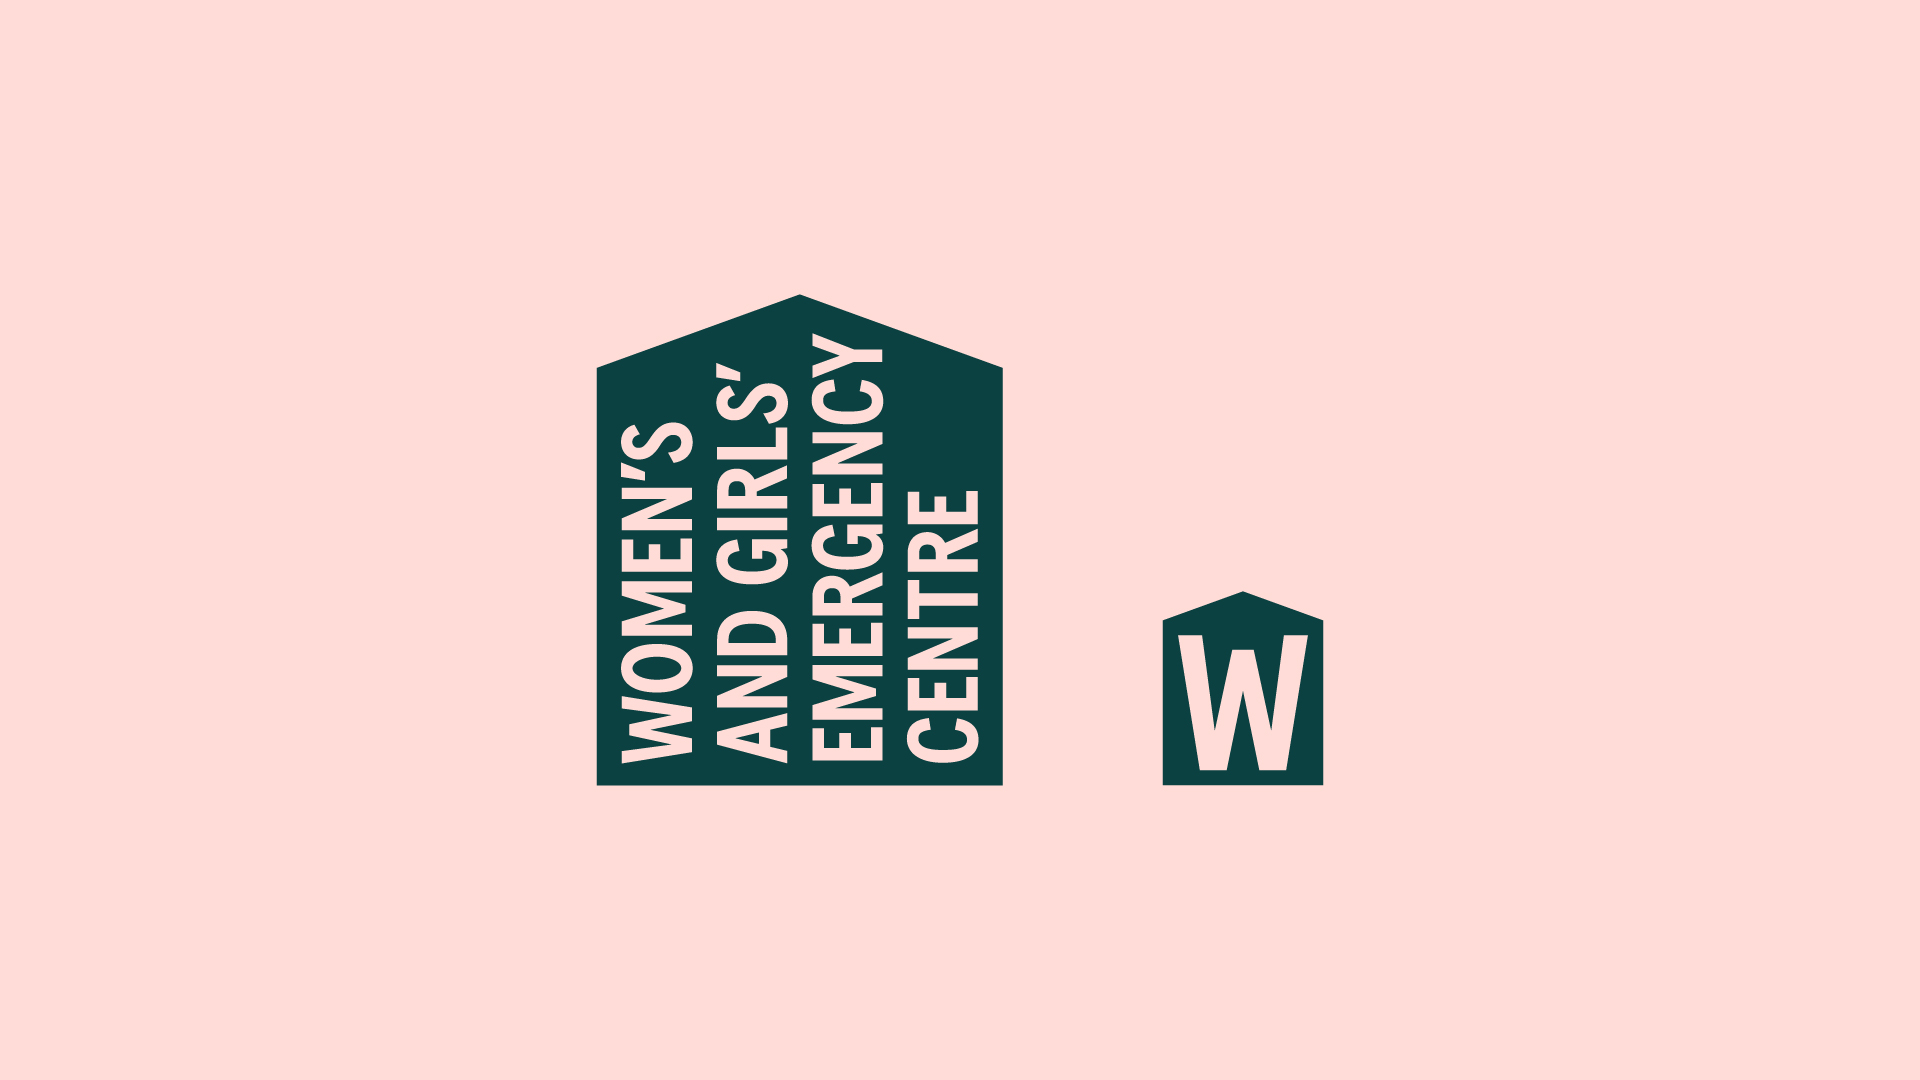 New Logo and Identity for Women's and Girls' Emergency Centre by For The People